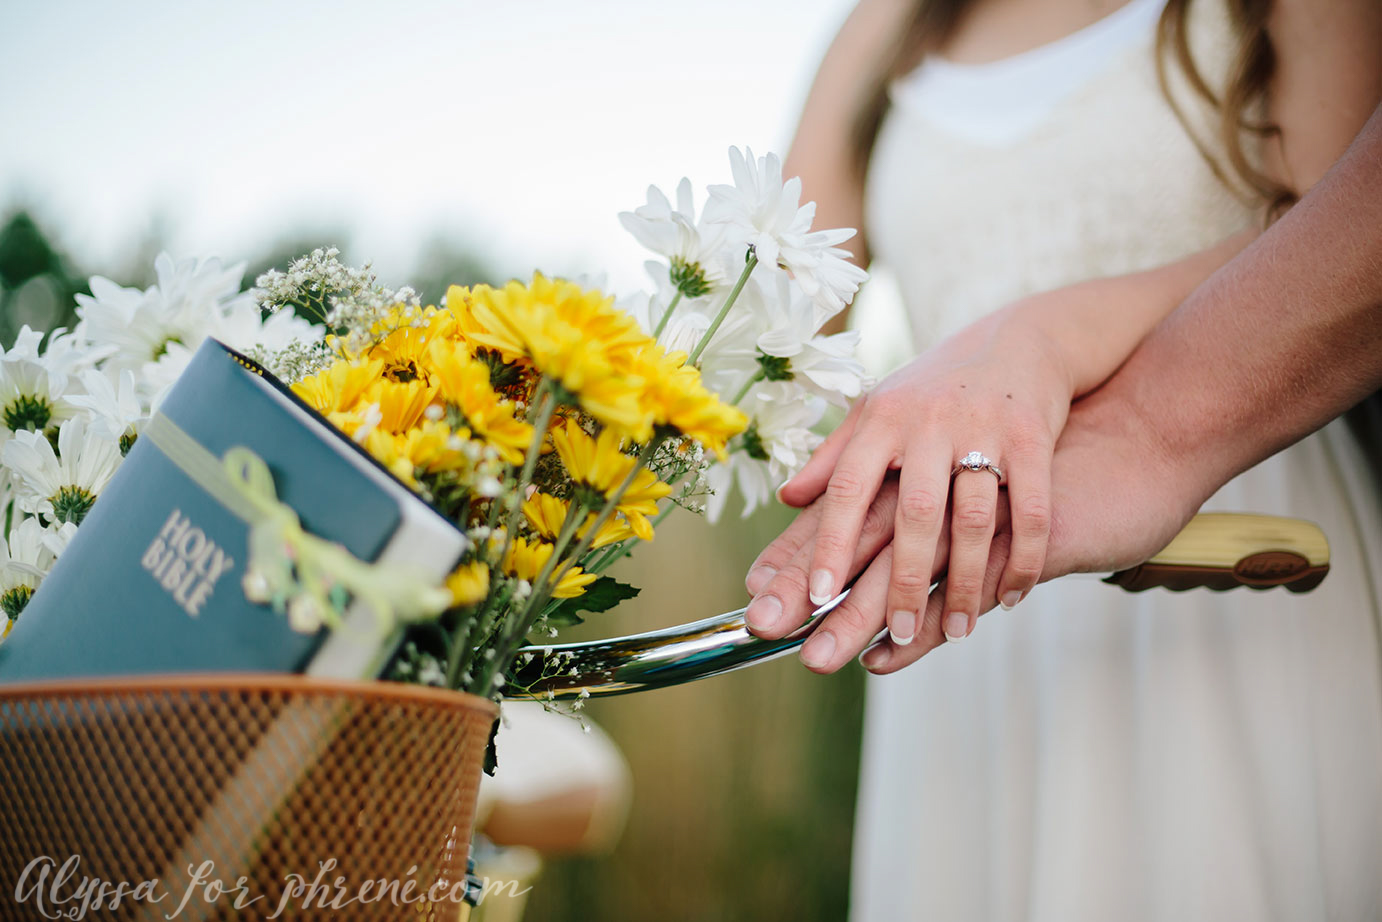 Grand_Rapids_Engagment_Photographer20.jpg